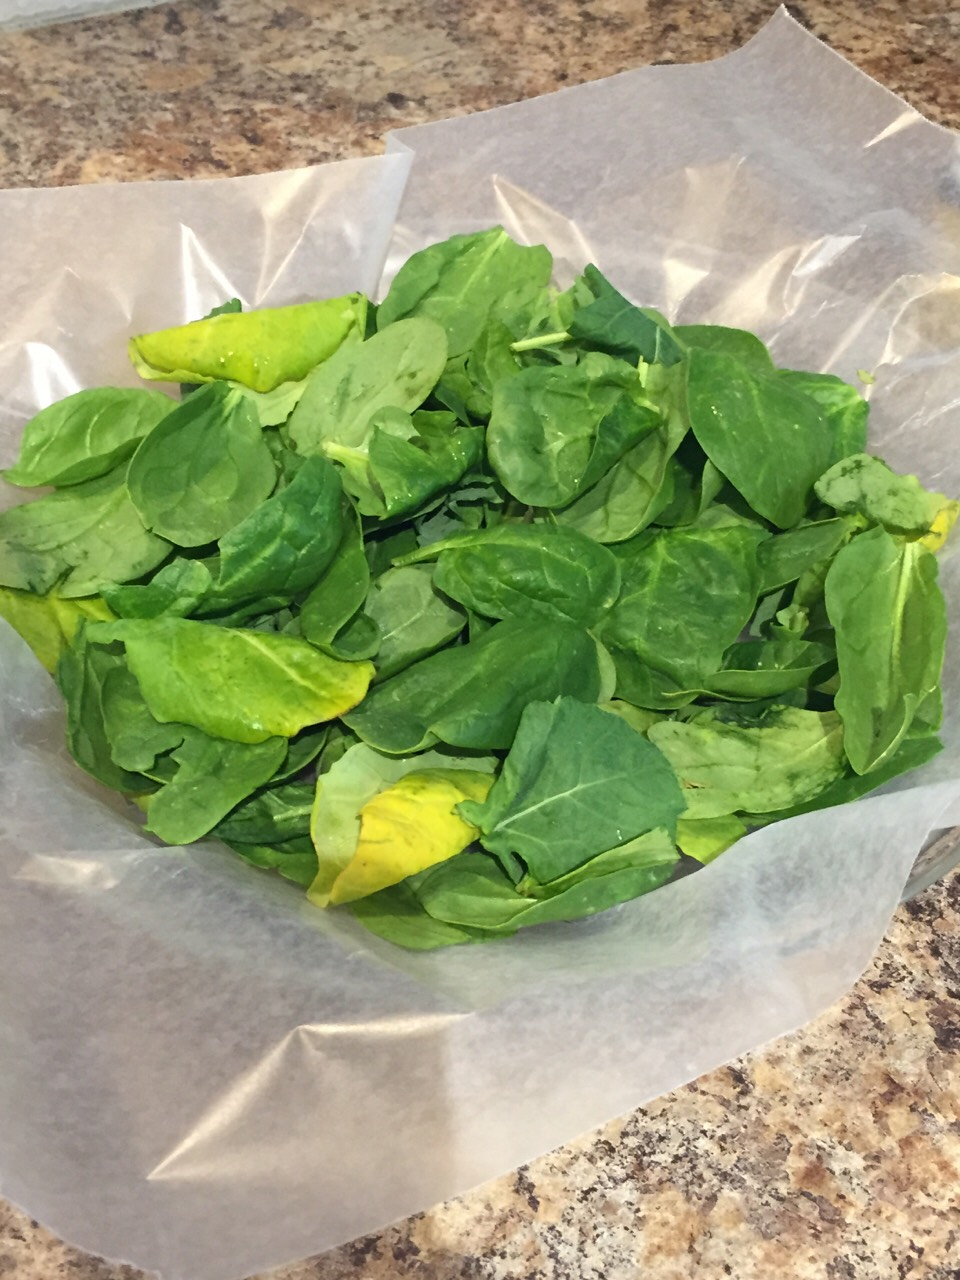 Add a few drops of lemon oil to wax paper and coat with fingers, rinse and take off any stems and place on wax paper.  Put in freezer to freeze. When greens have frozen transfer them into a freezer bag to keep fresh until you can use them or portion into smaller bags for quick recipes